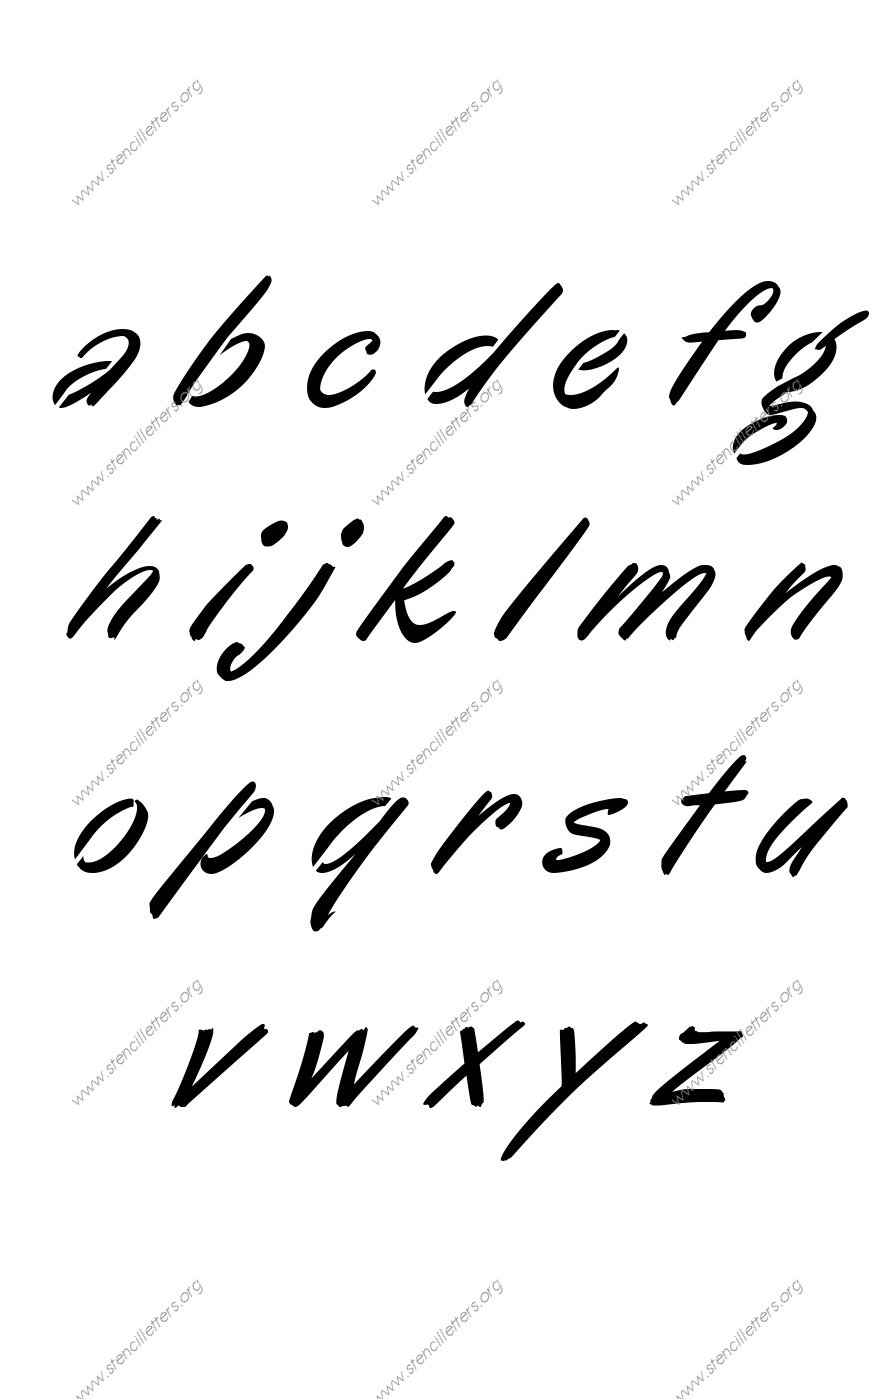 Calligraphic Italic A to Z lowercase letter stencils